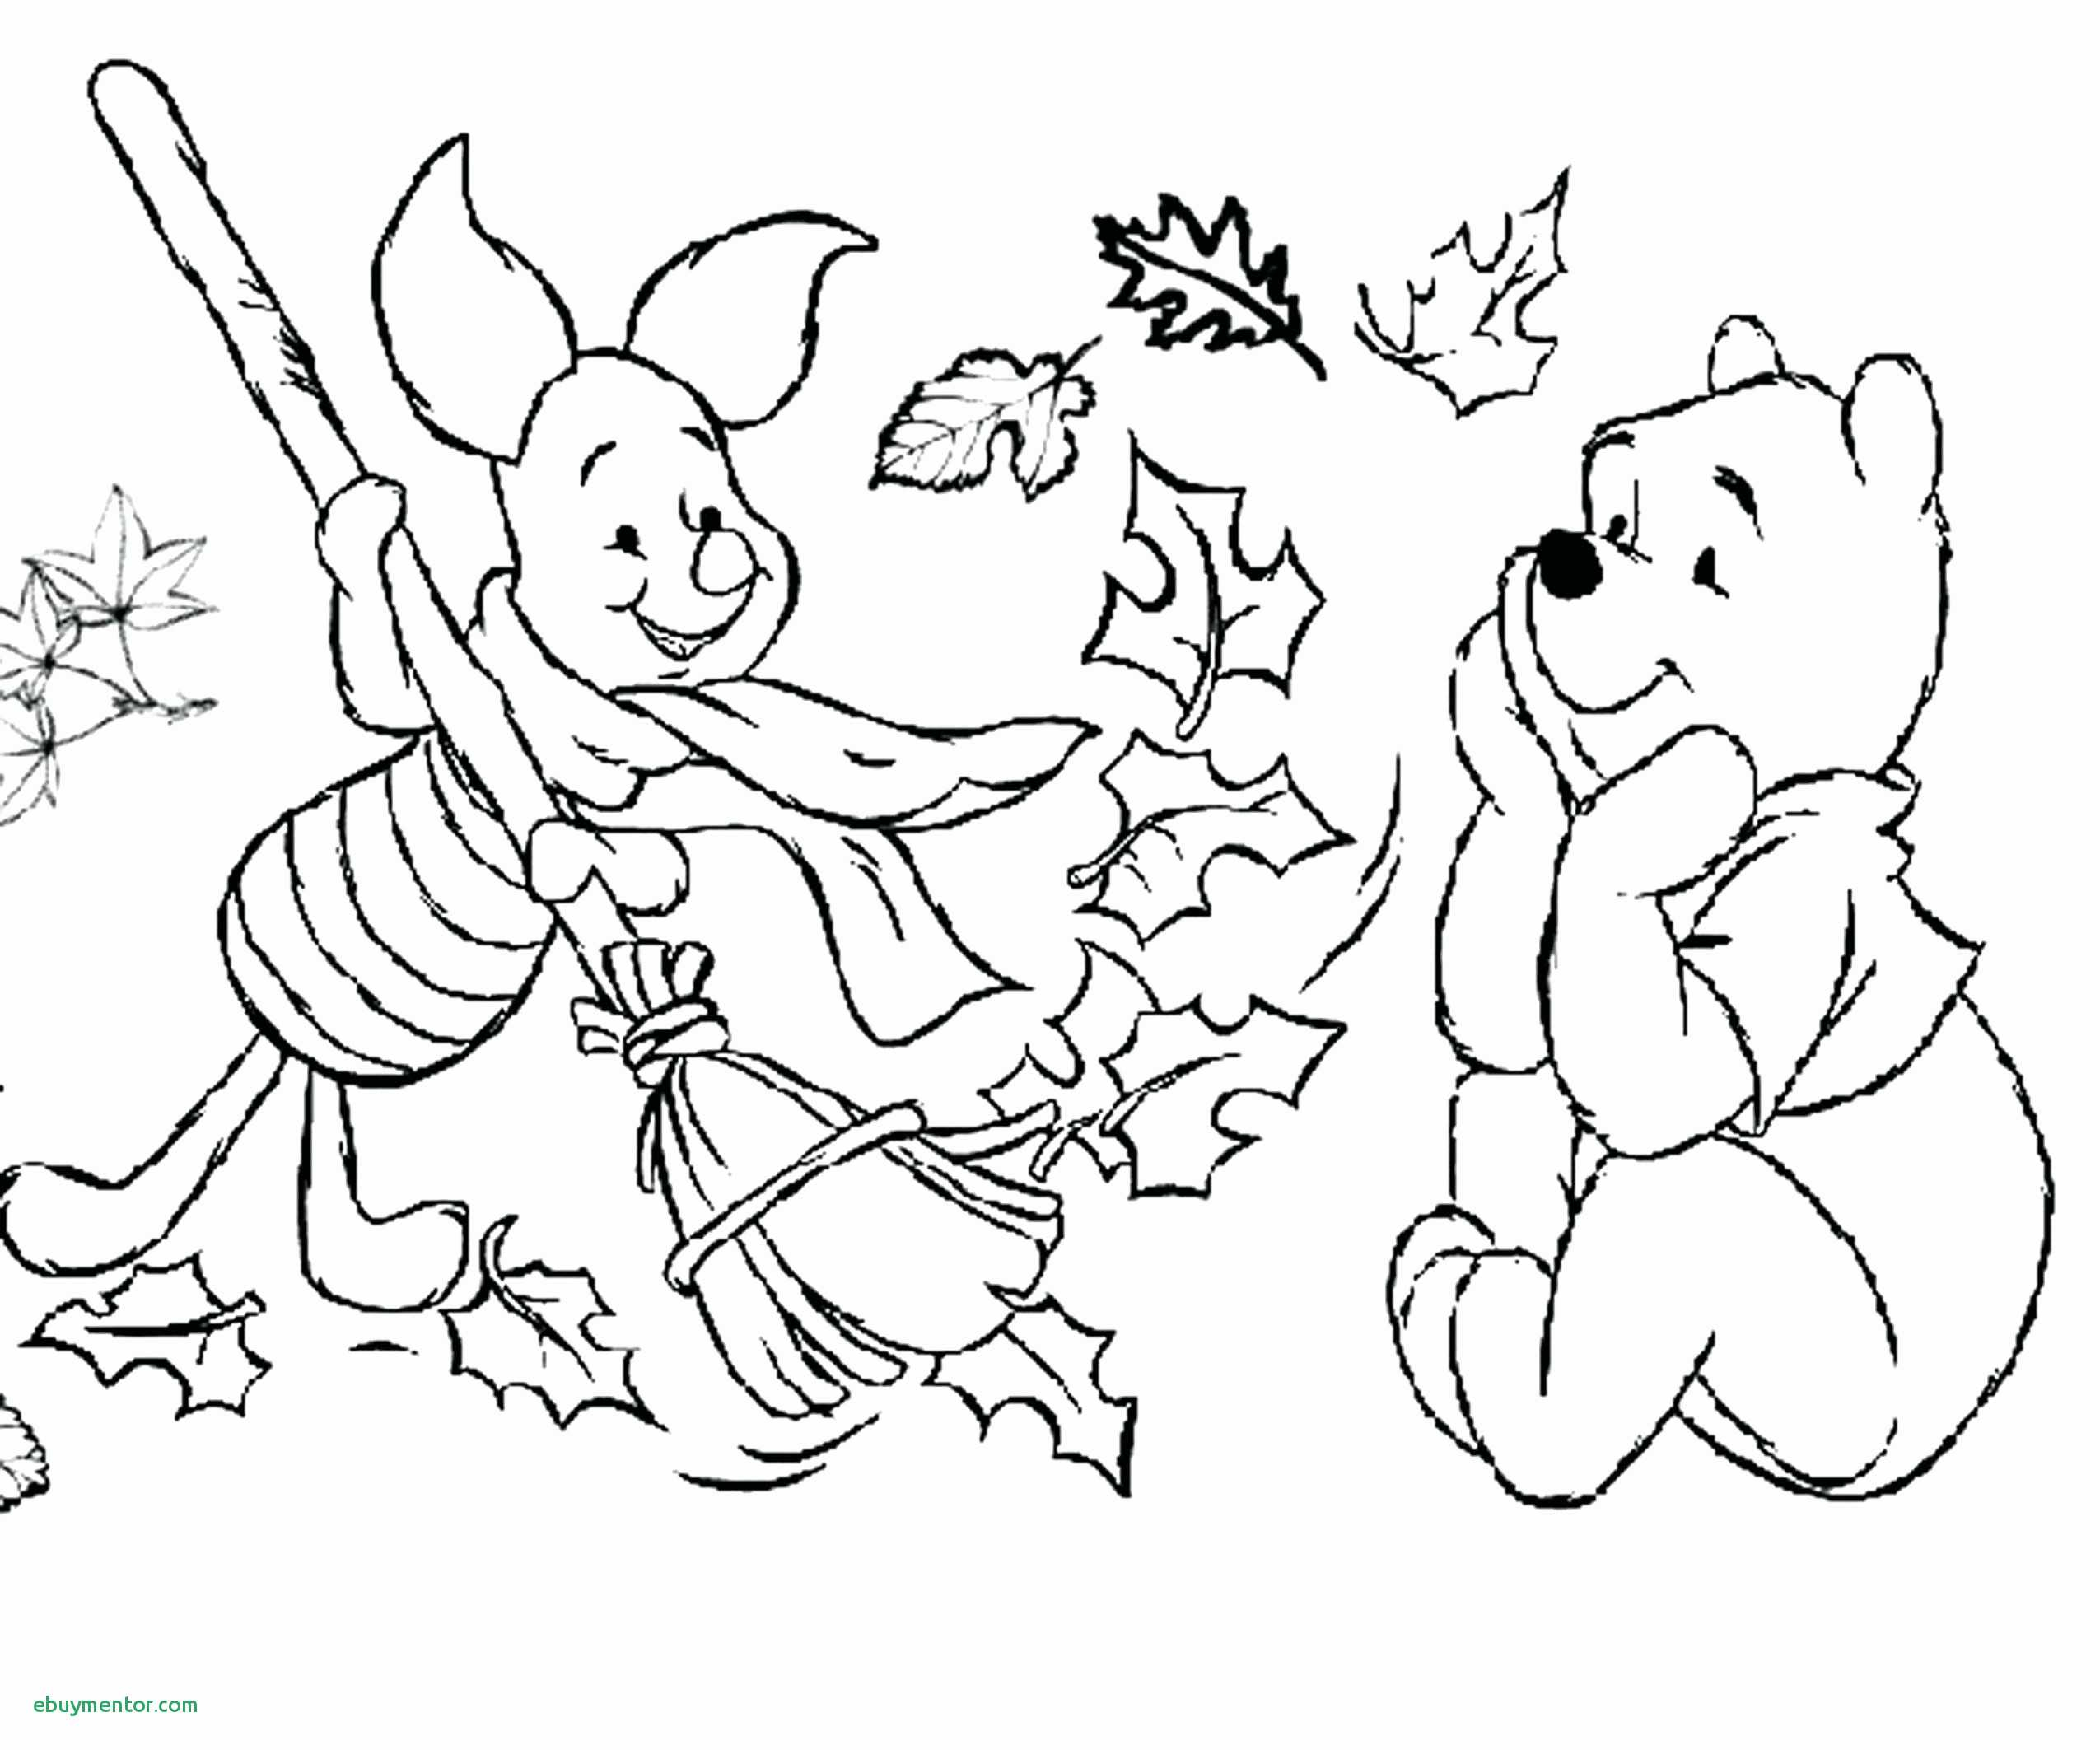 Cow Coloring Pages  to Print 20k - Free For Children